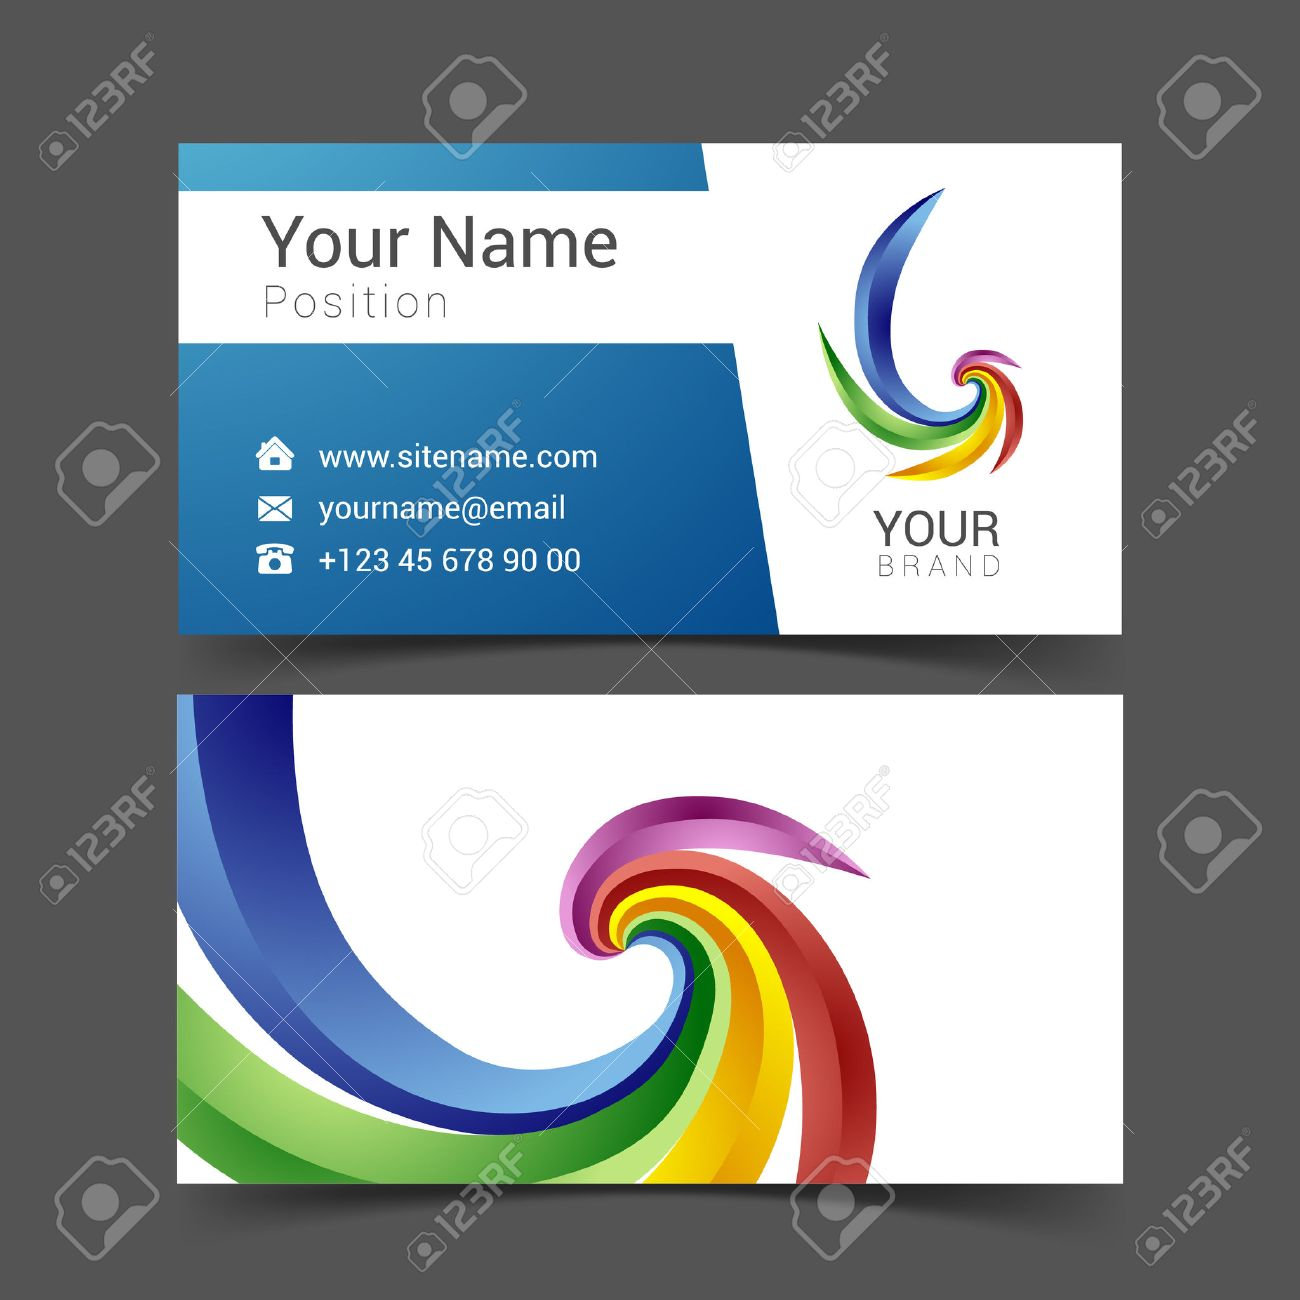 Business Card Creative Design Template Corporate Identity Logo ...